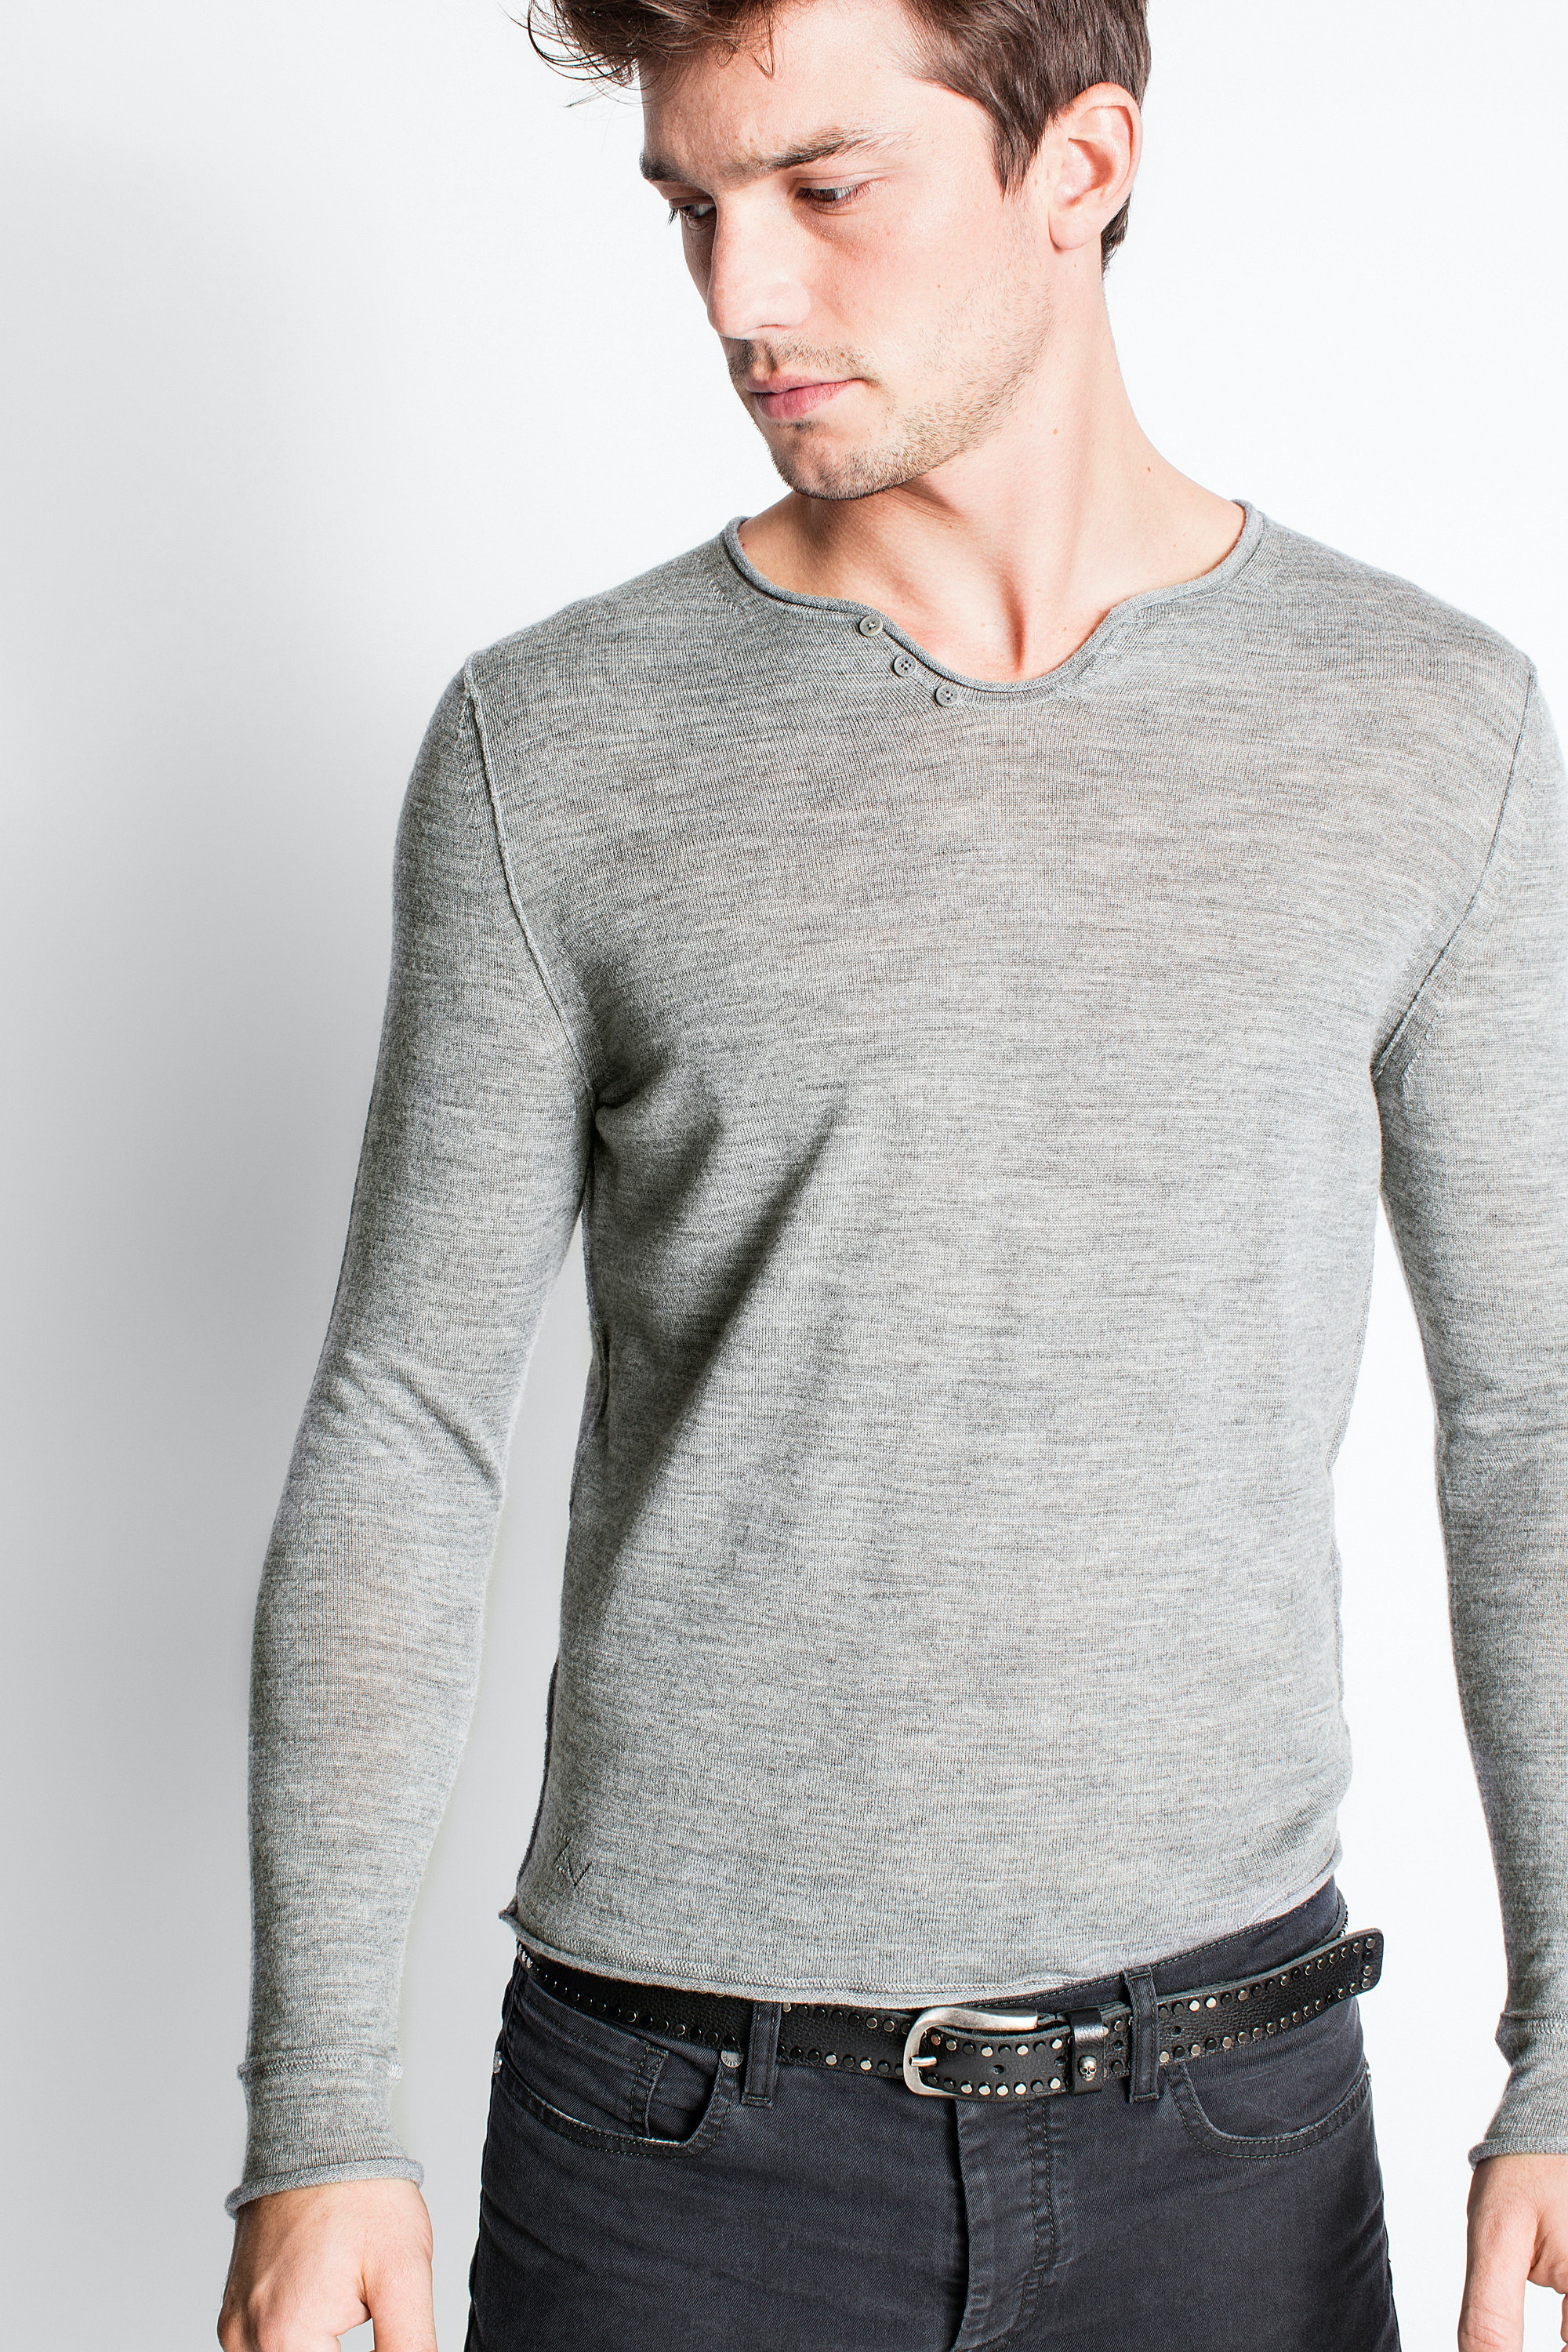 Monastir Men's Sweater